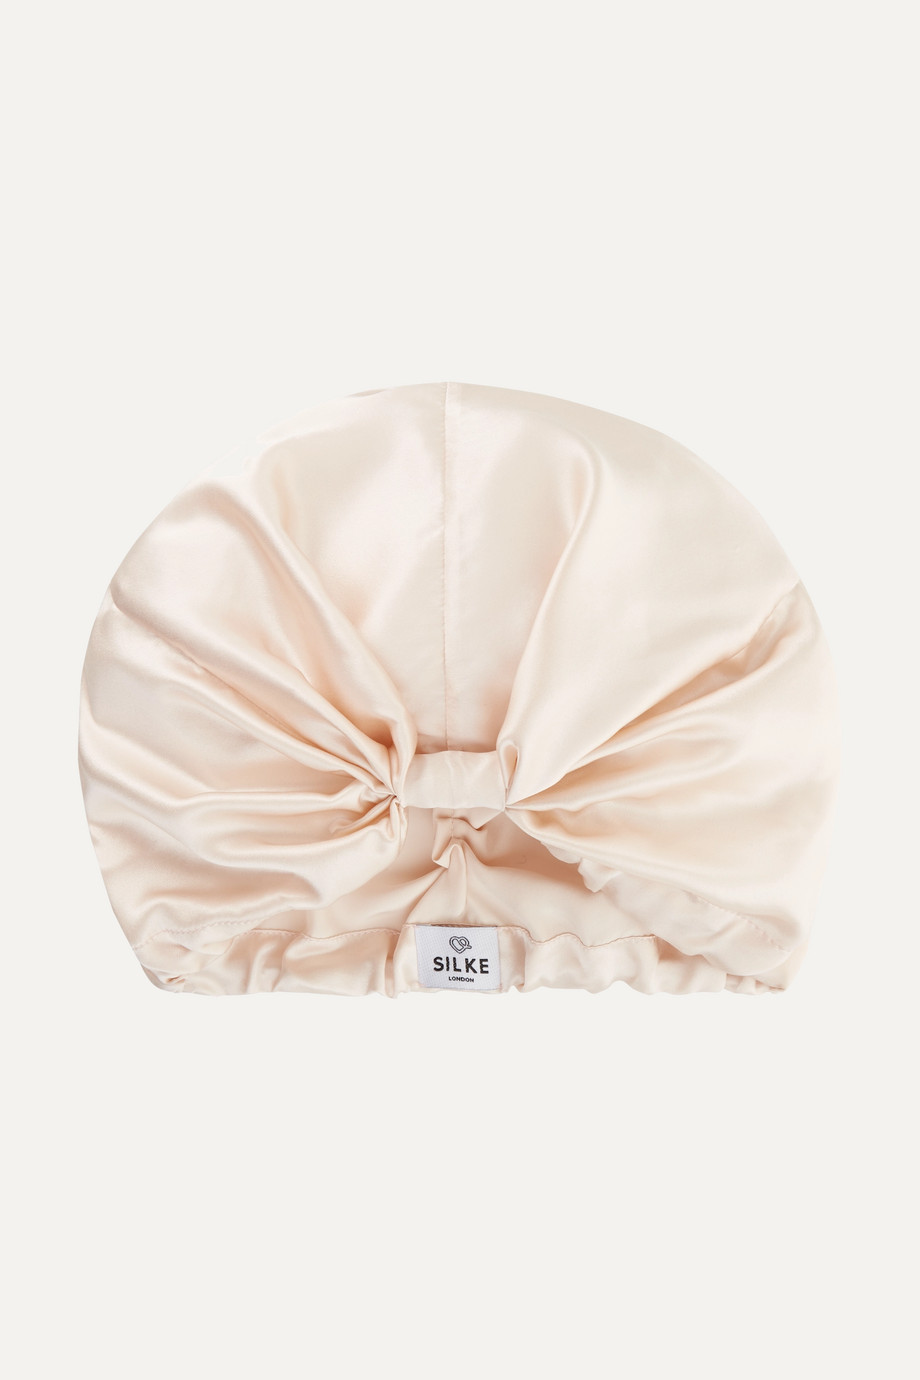 SILKE LONDON The Sofia silk hair wrap